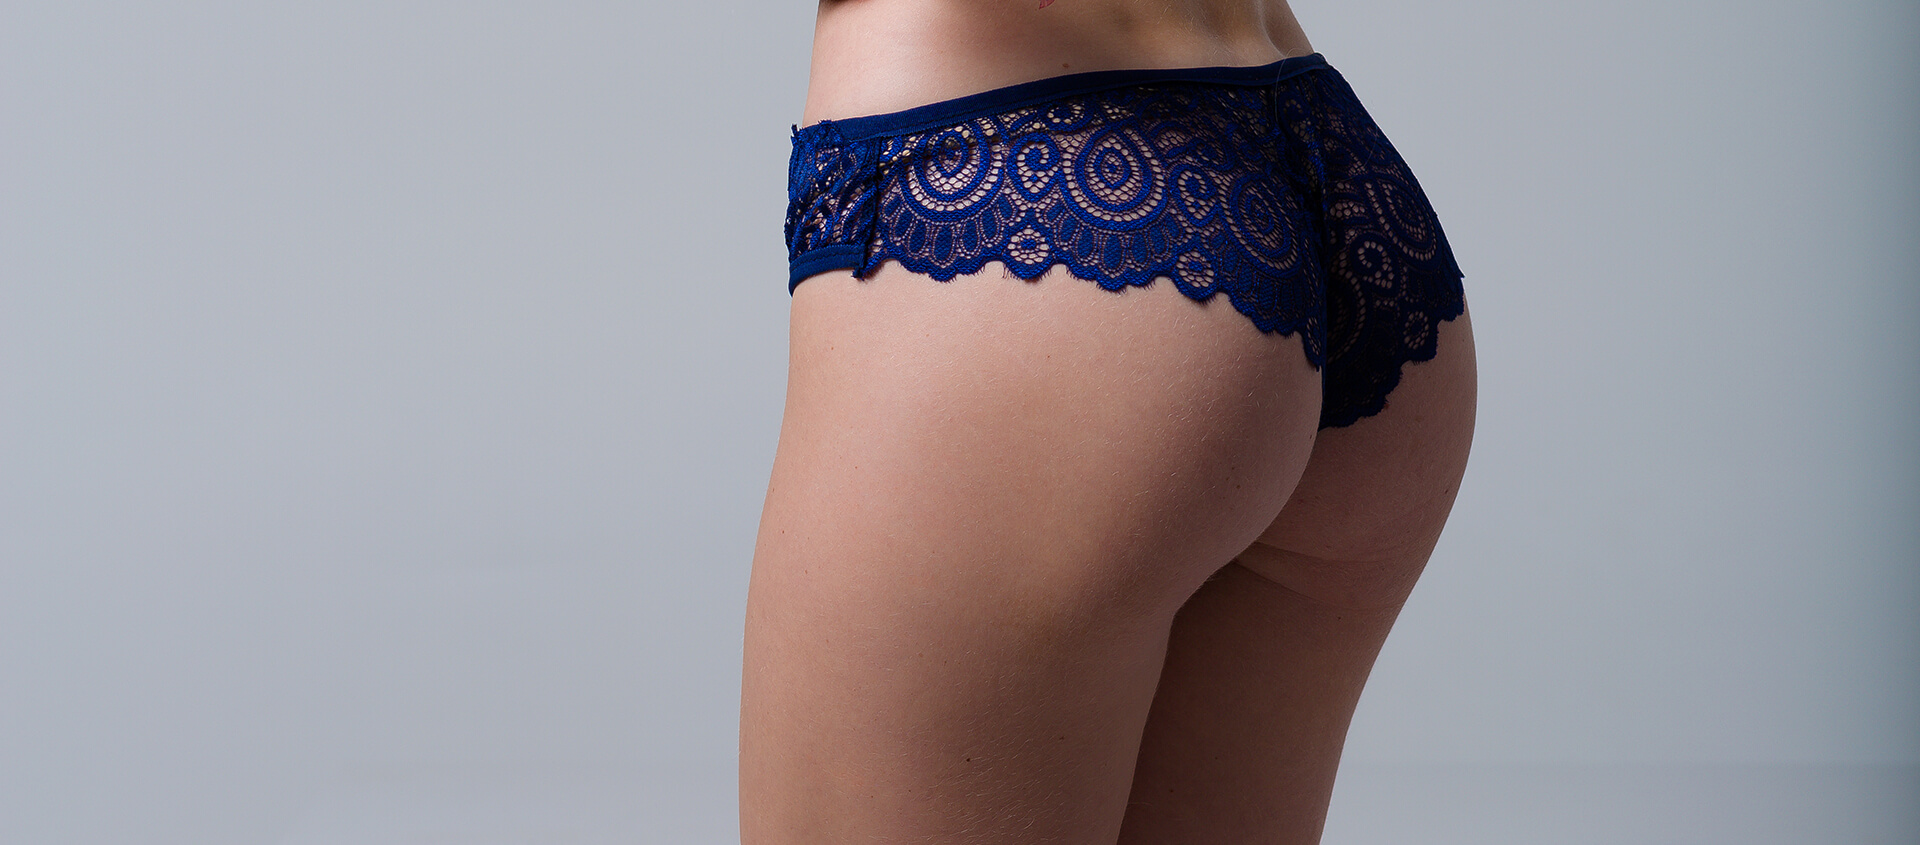 Mark H. Tseng, M.D. Blog | Confidently flaunt your curves with Brazilian butt enhancement or implants in Kirkland, WA